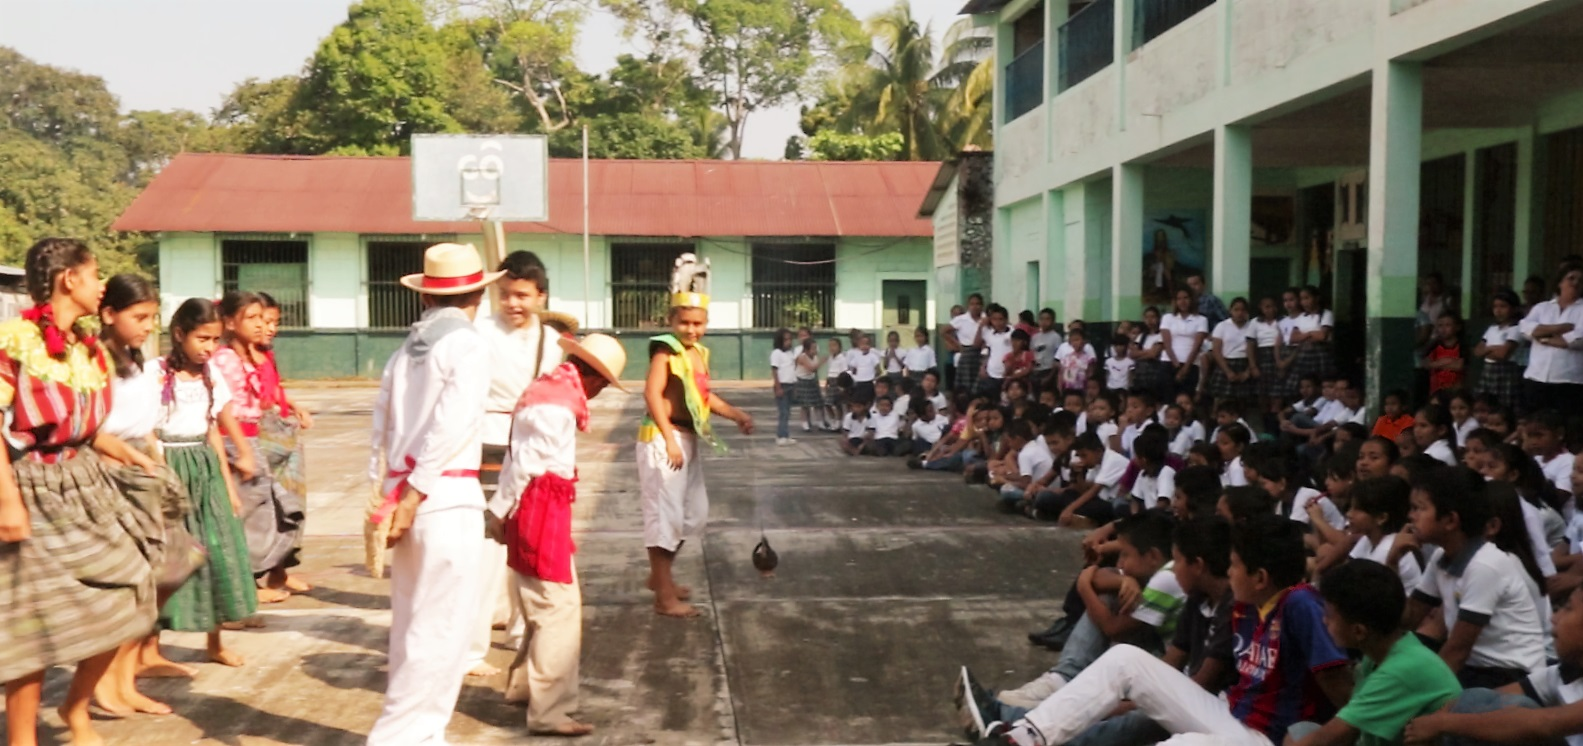 A school assembly and dance put up on the occasion of our visit.